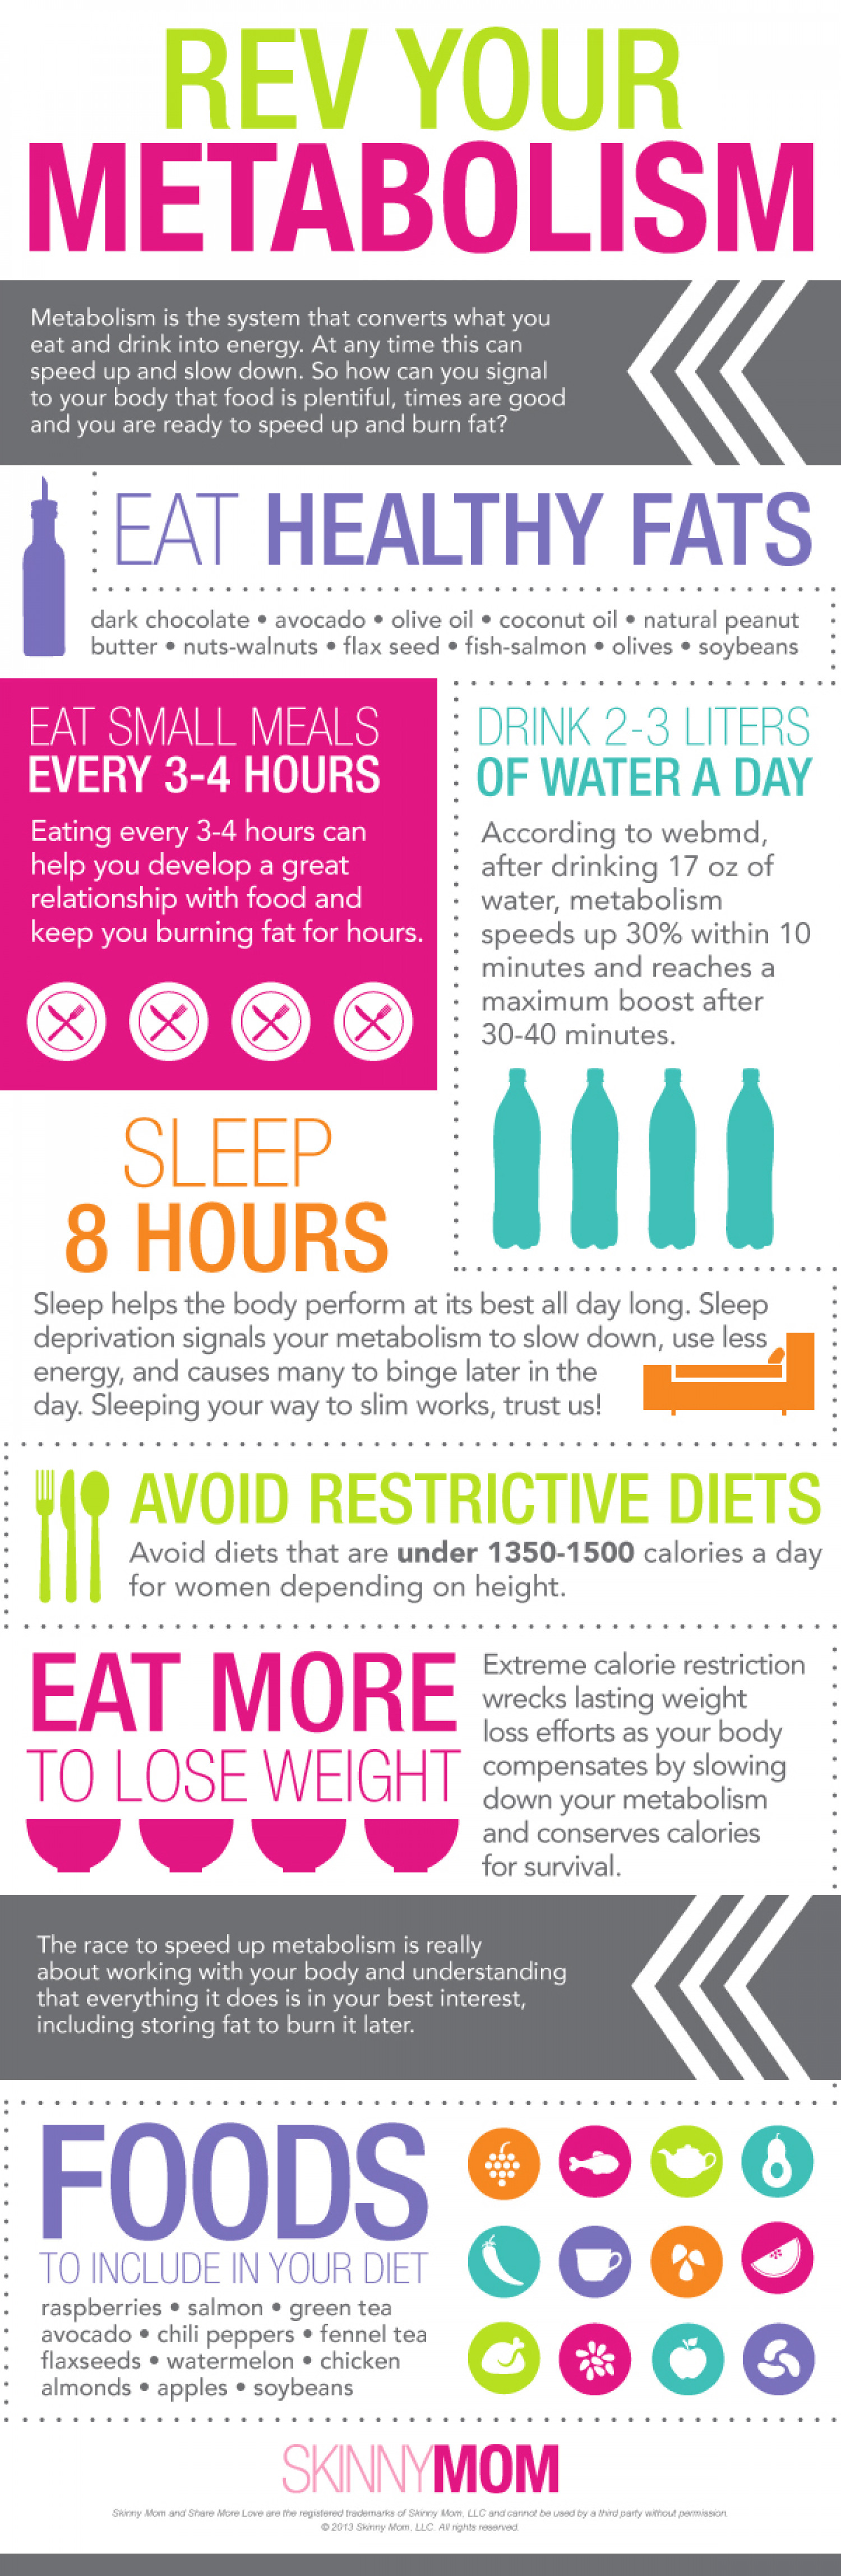 Rev Your Metabolism Infographic